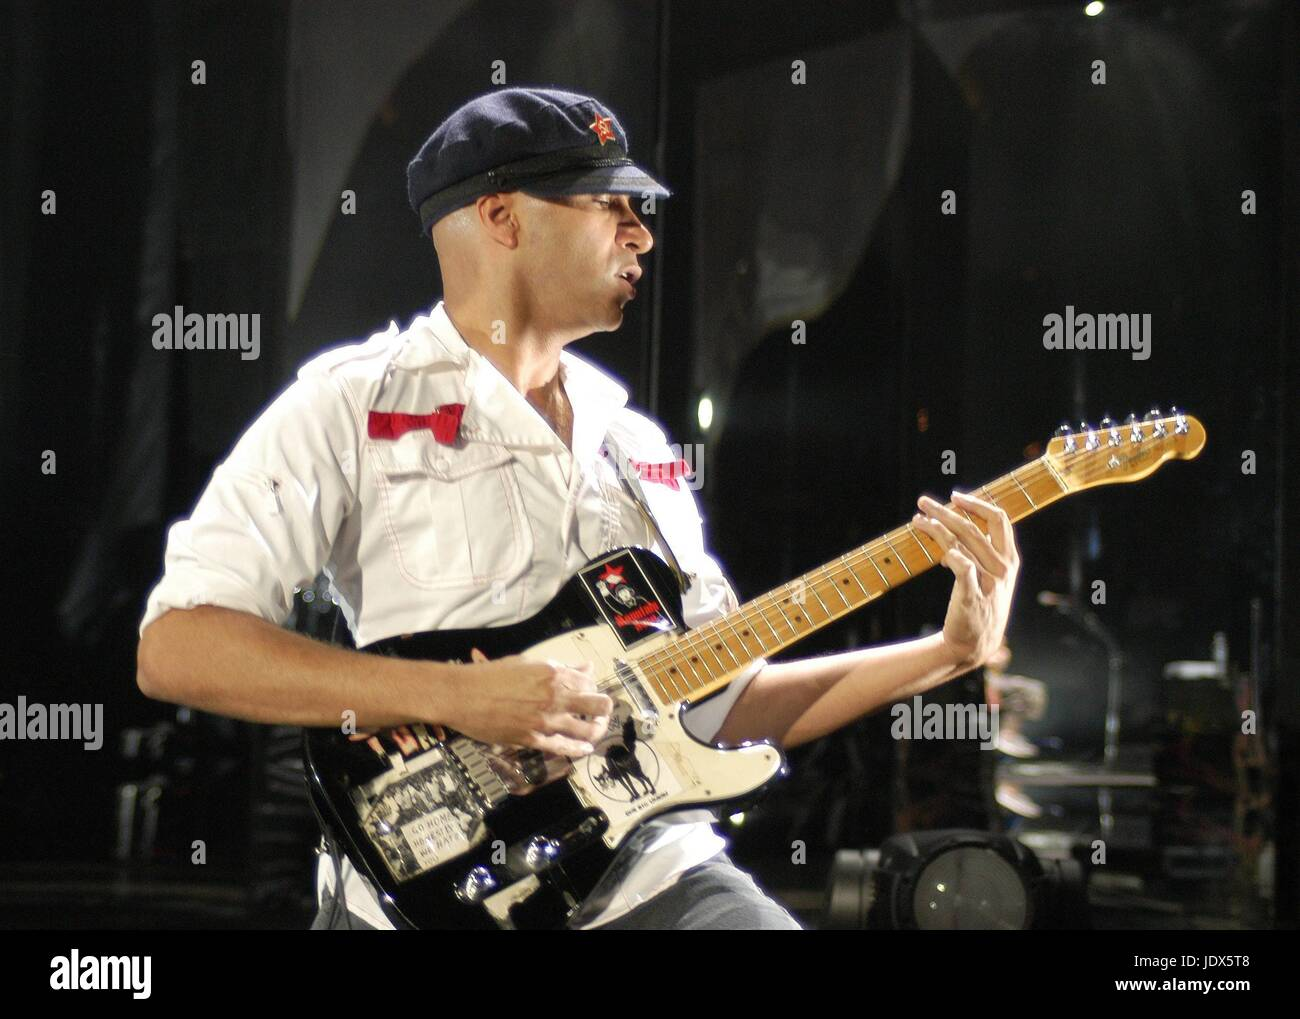 Audioslave performing at Lollapalooza.  Shoreline Amphitheater, Mountain View, CA.   August 19, 2003.   © Anthony - Stock Image